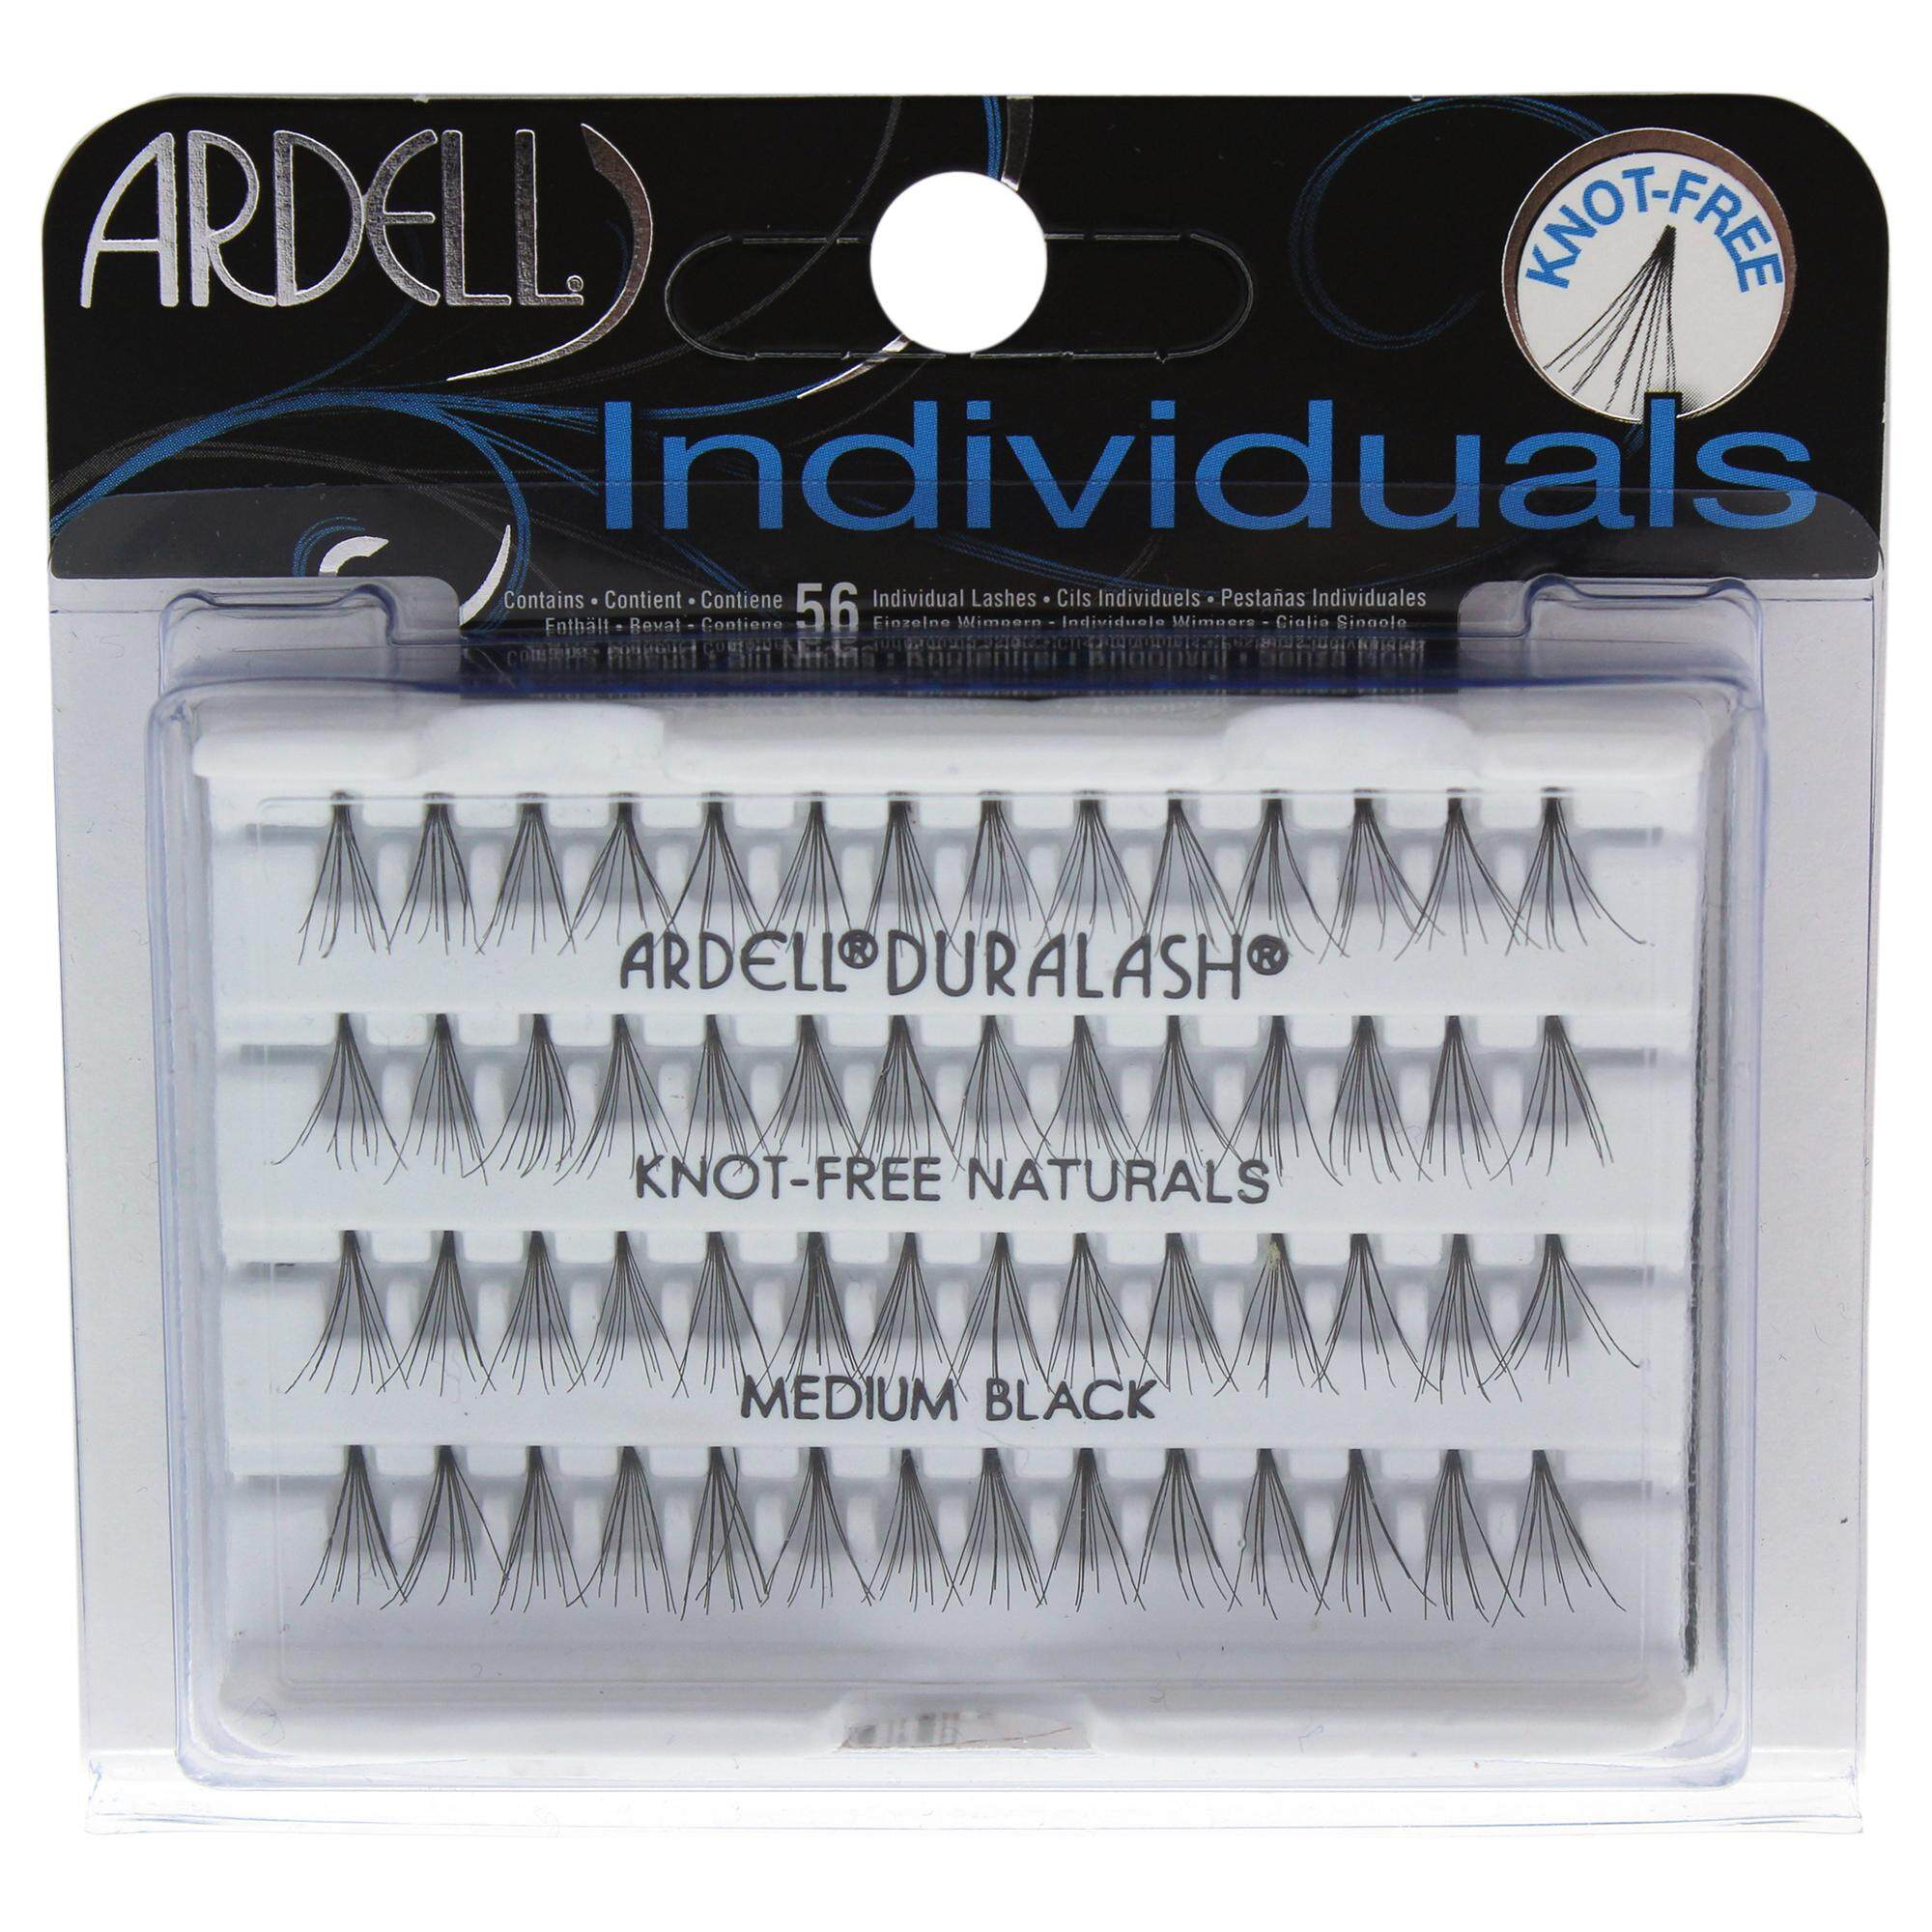 5b72f3c10ce Ardell DuraLash Individuals Naturals Lashes Set - Medium Black - 56 Pc  Eyelashes